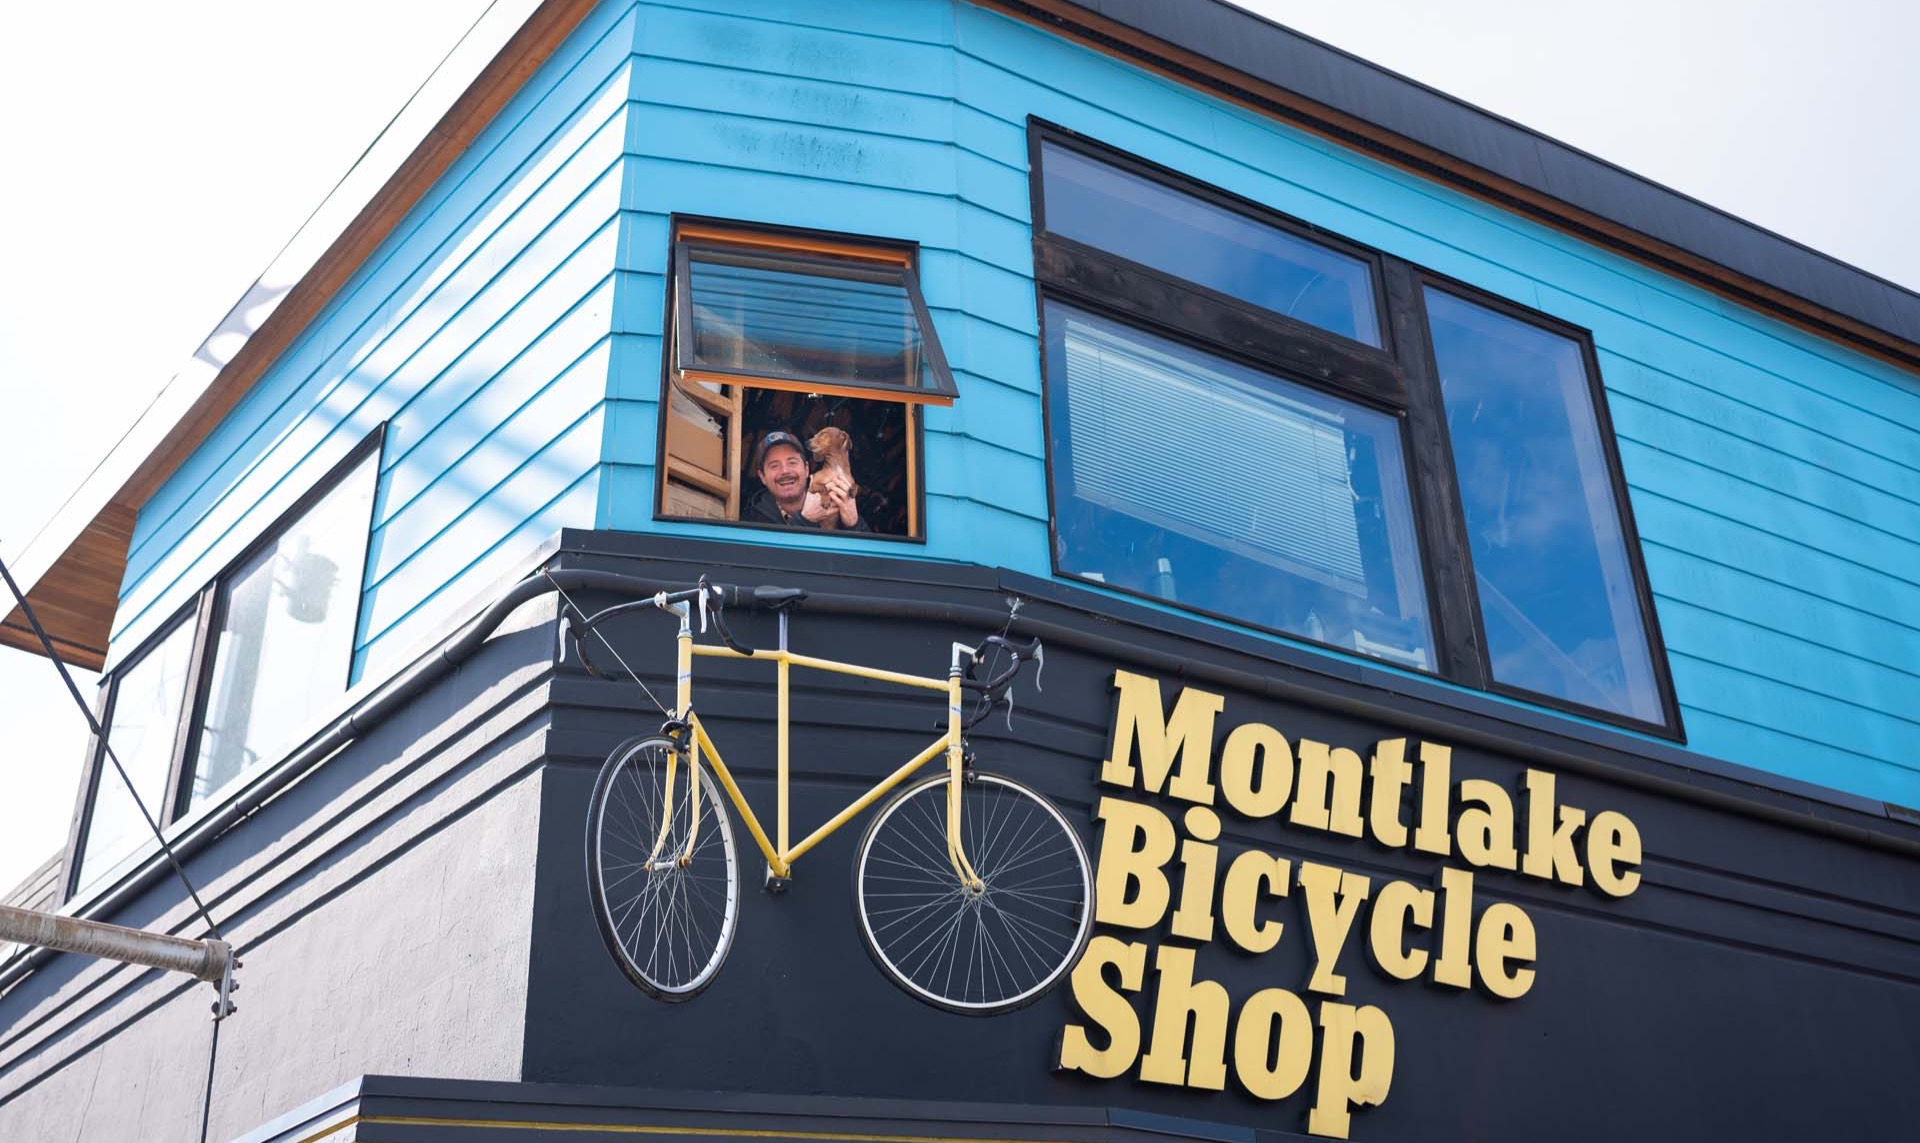 Photo of Patrick Montheith holding his Weiner dog Frankie out the front window the the Mountlake Bicycle Shop. Below the window is a double sided bike at the Montlake Bicycle Shop sign.